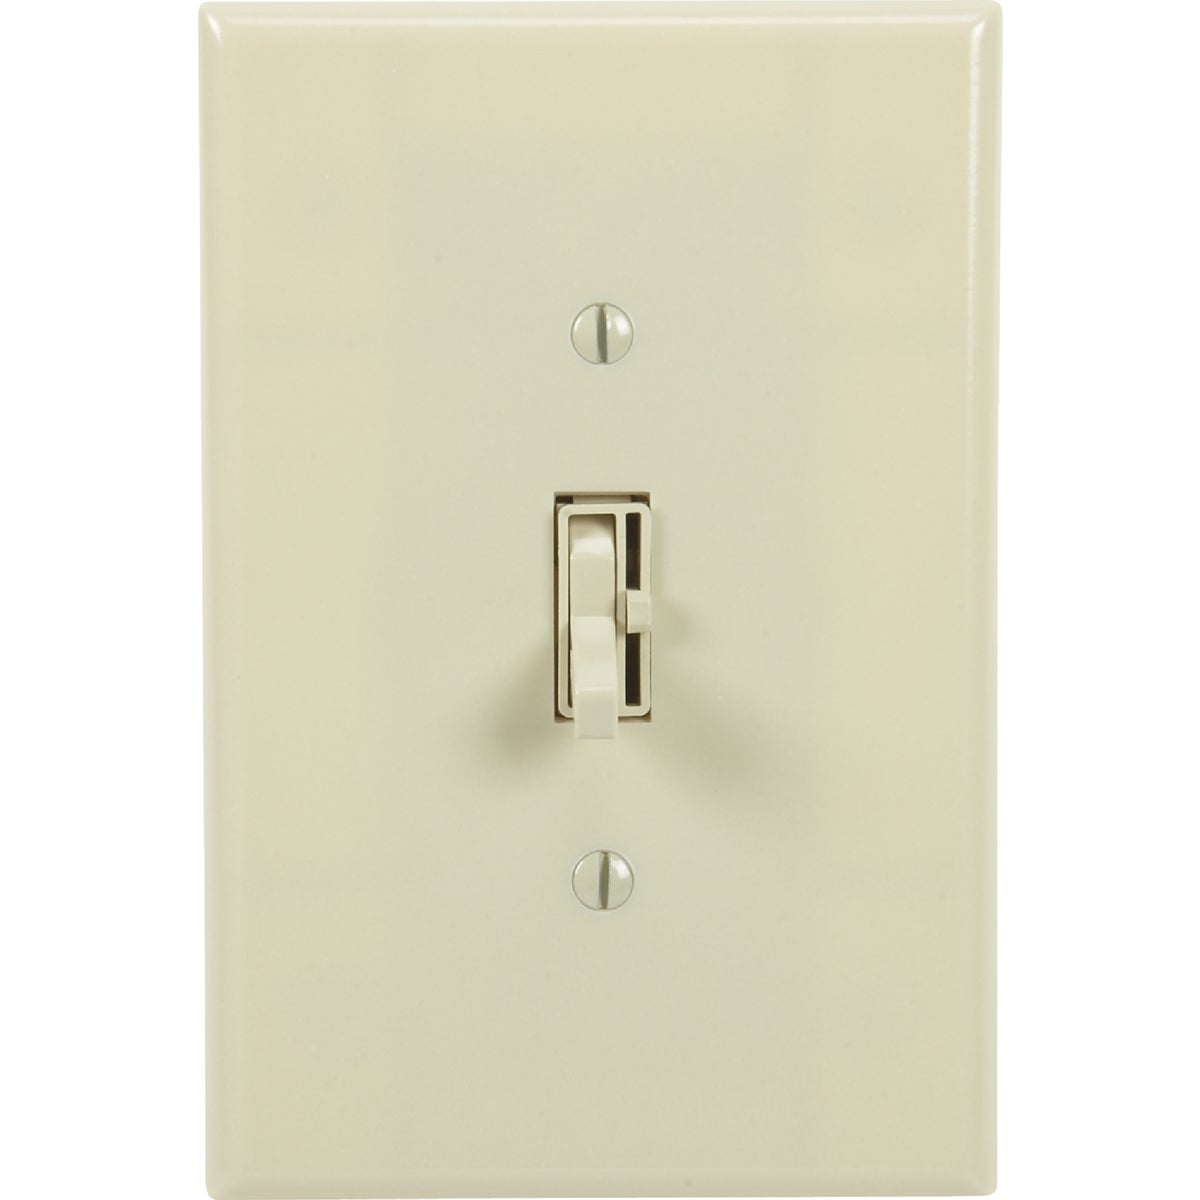 IV SP SLIDE DIMMER - TG-600PH-IV by Lutron Elect Co Inc